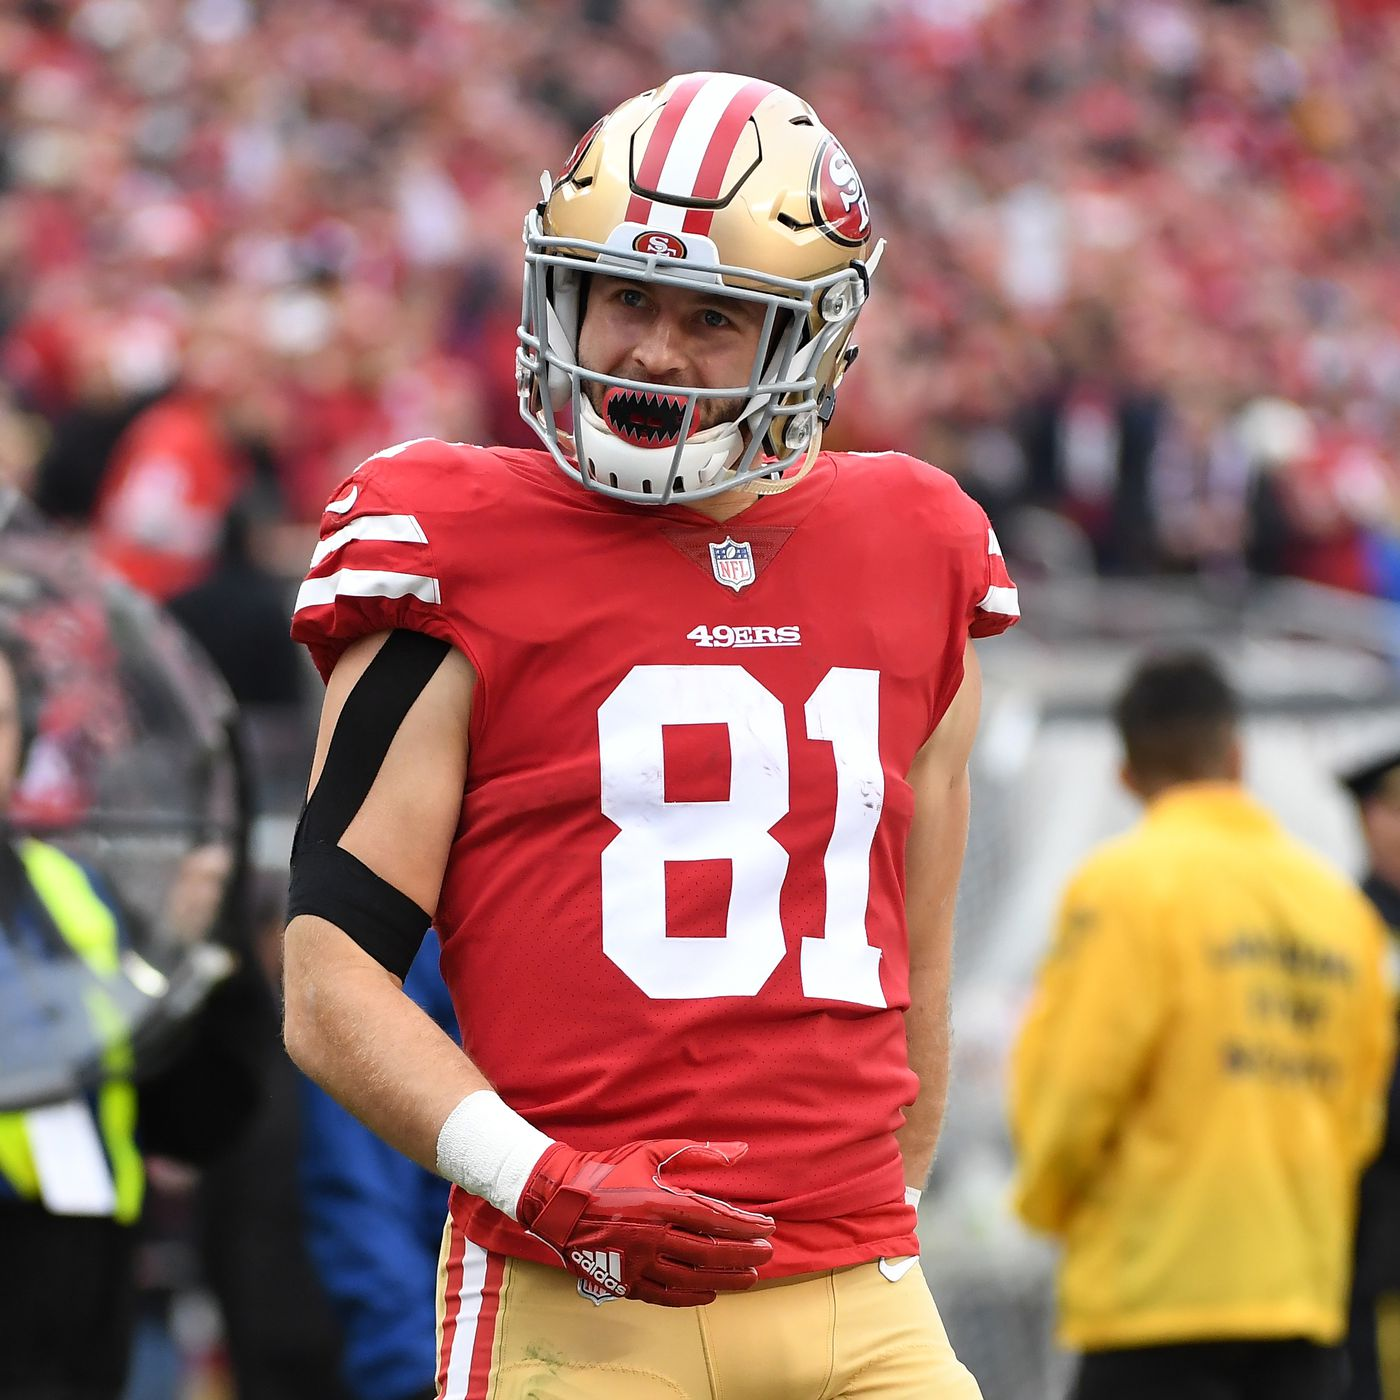 San Francisco 49ers The Niners Get Good News On The Injury Front Niners Nation